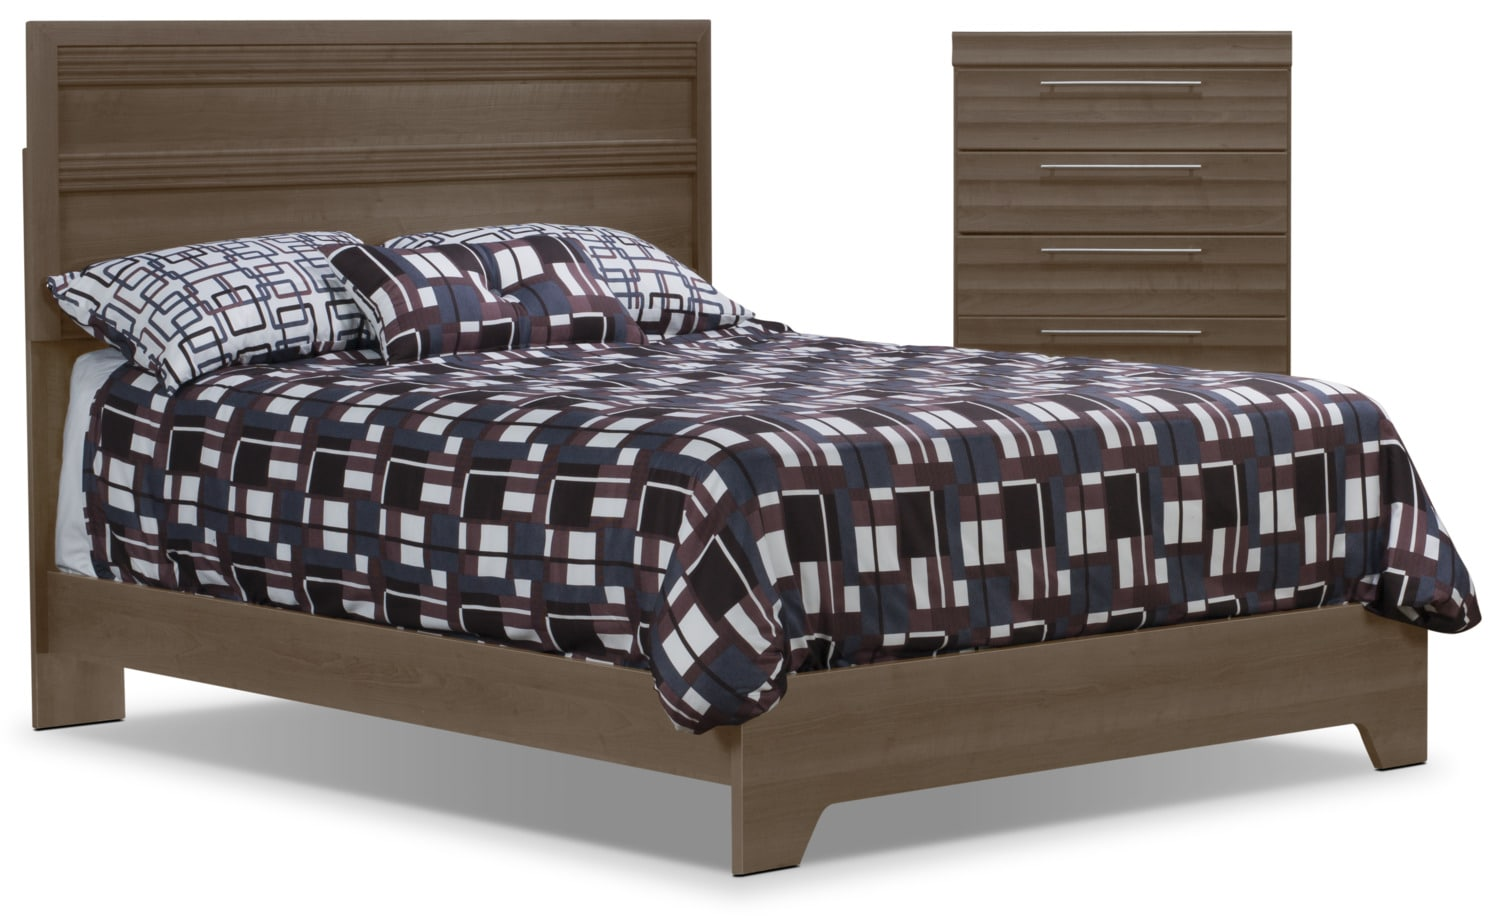 Olivia 4 Piece Queen Bed And Chest Package Grey The Brick